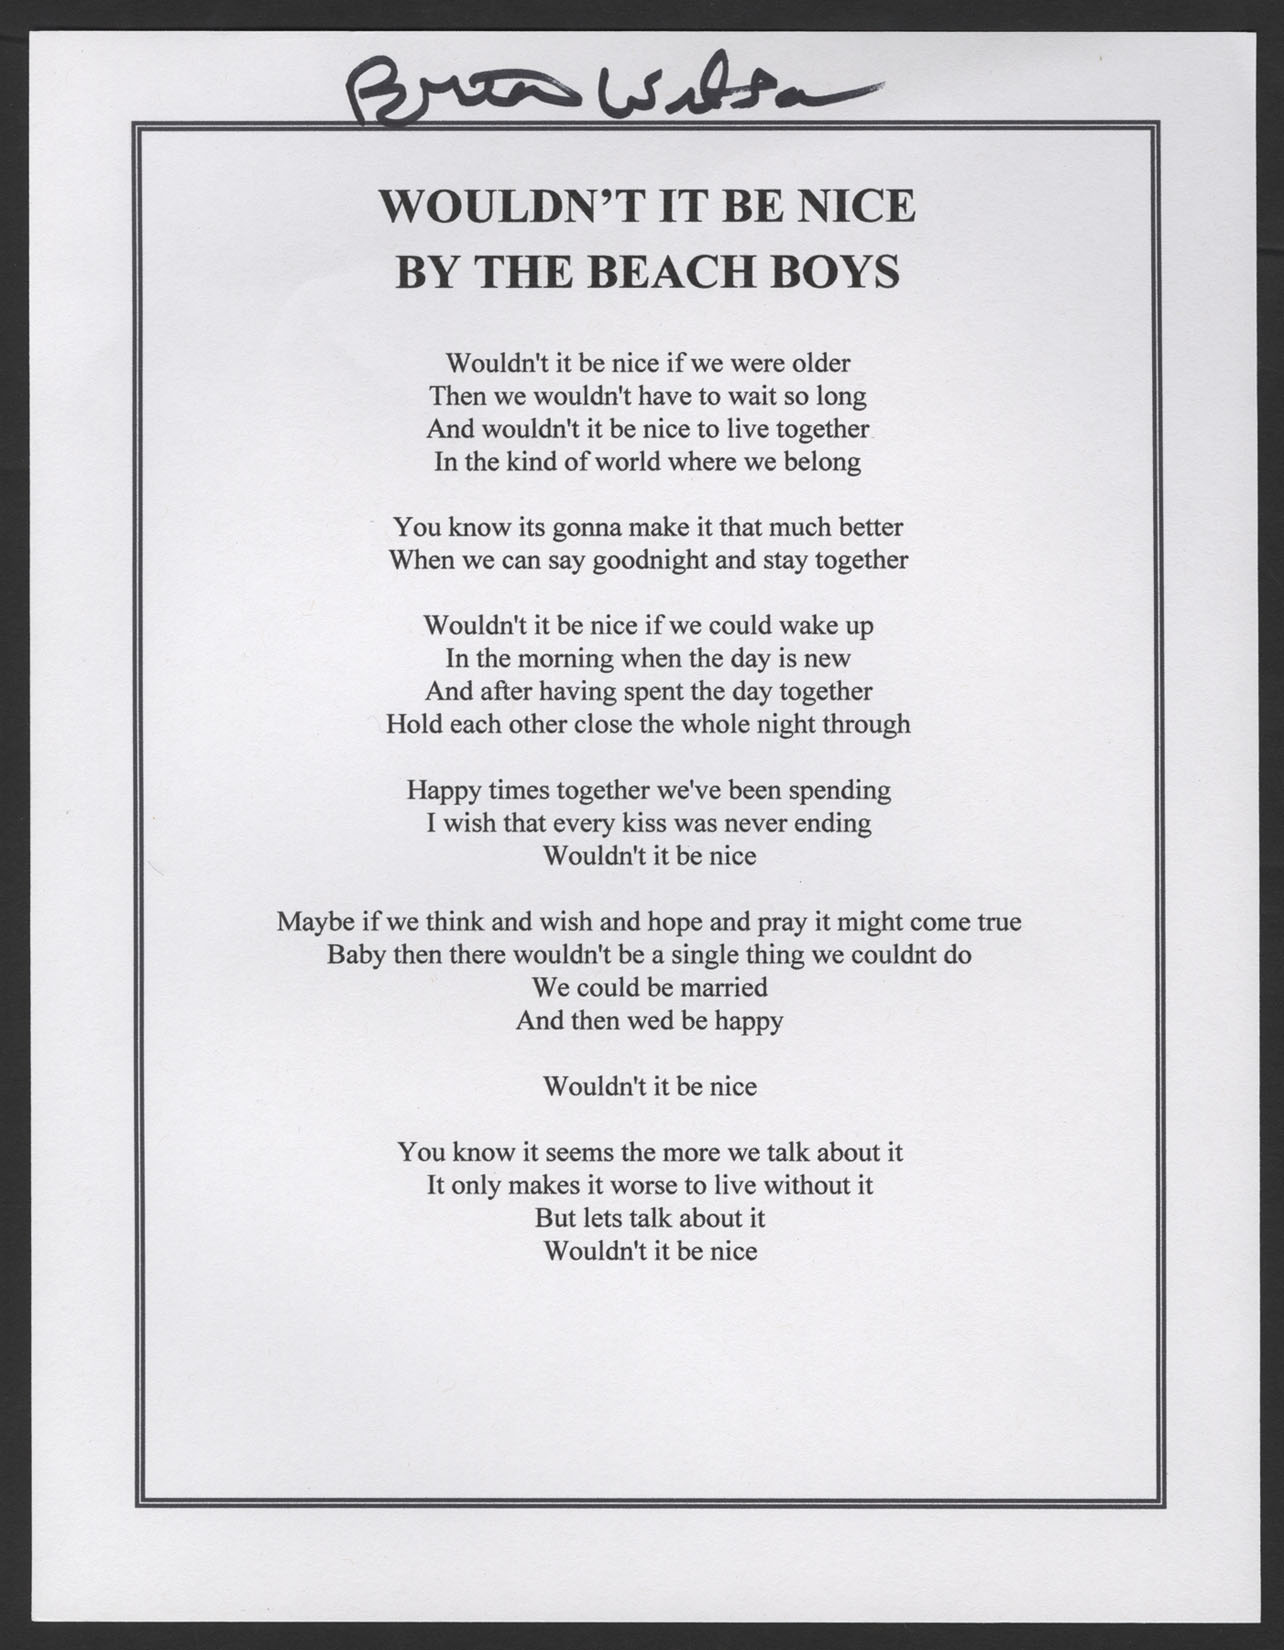 Brian Wilson Signed Beach Boys Wouldnt It Be Nice Lyric Sheet Hover To Zoom